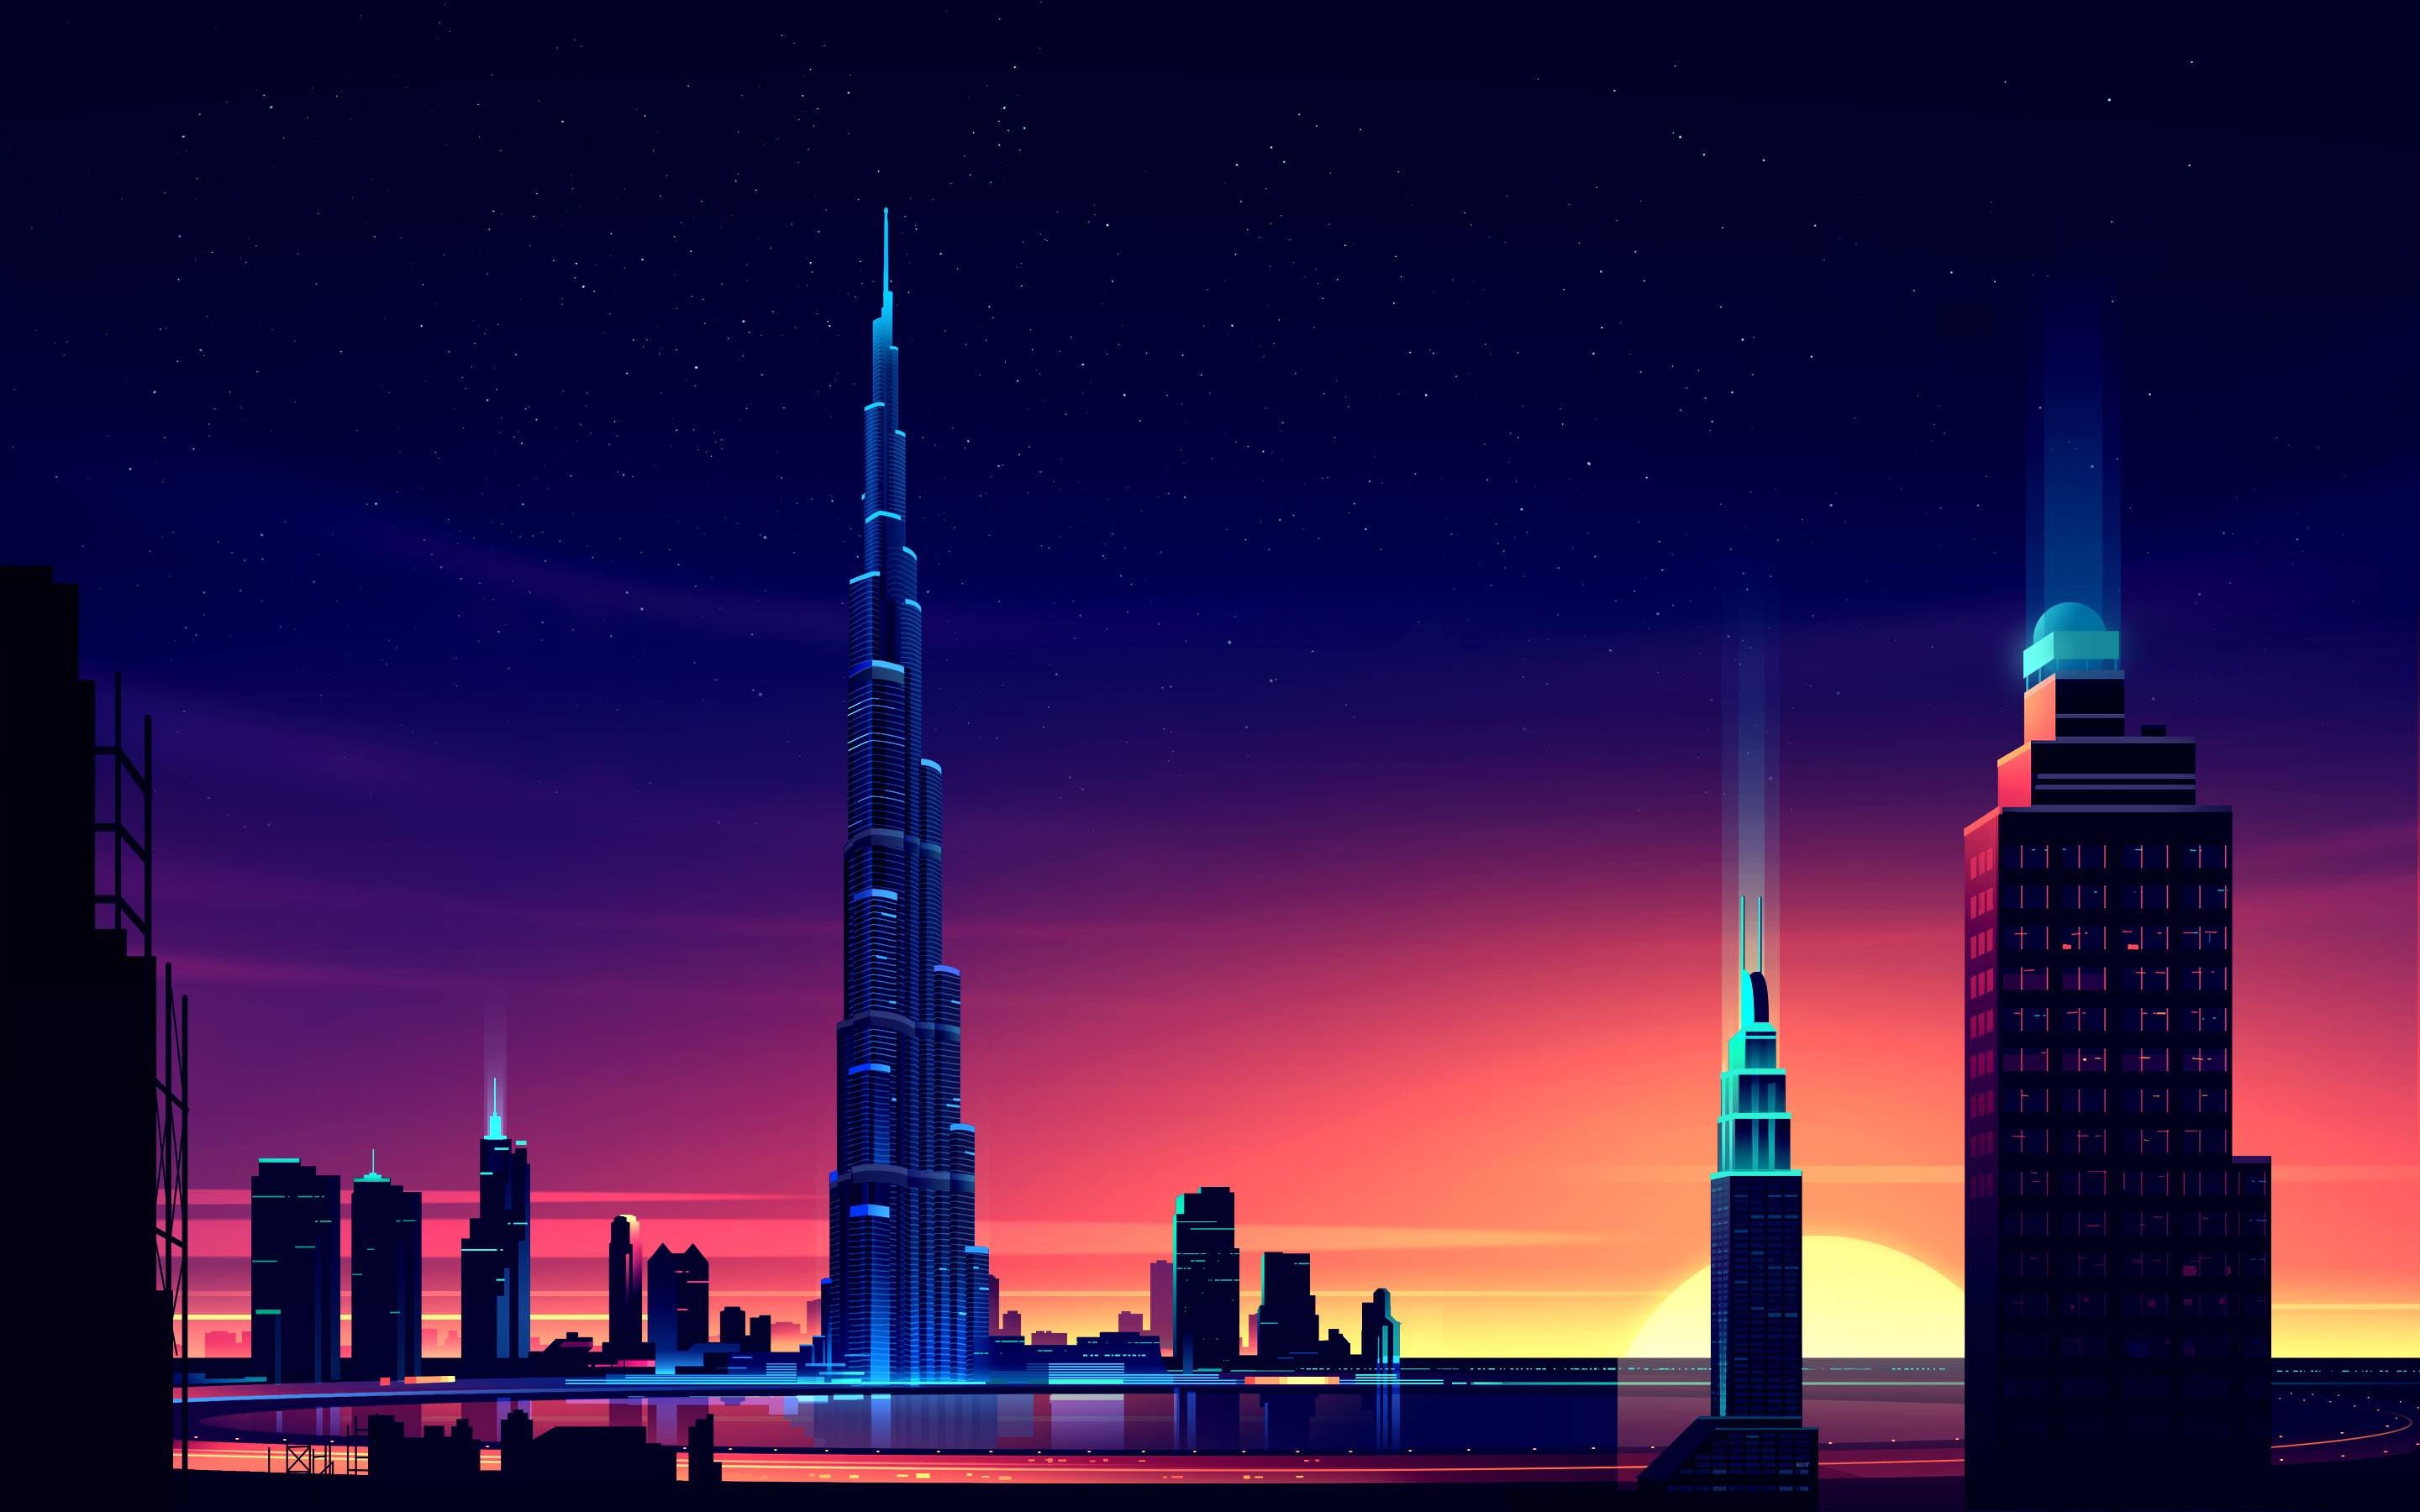 dubai burj khalifa minimalist, hd artist, 4k wallpapers, images